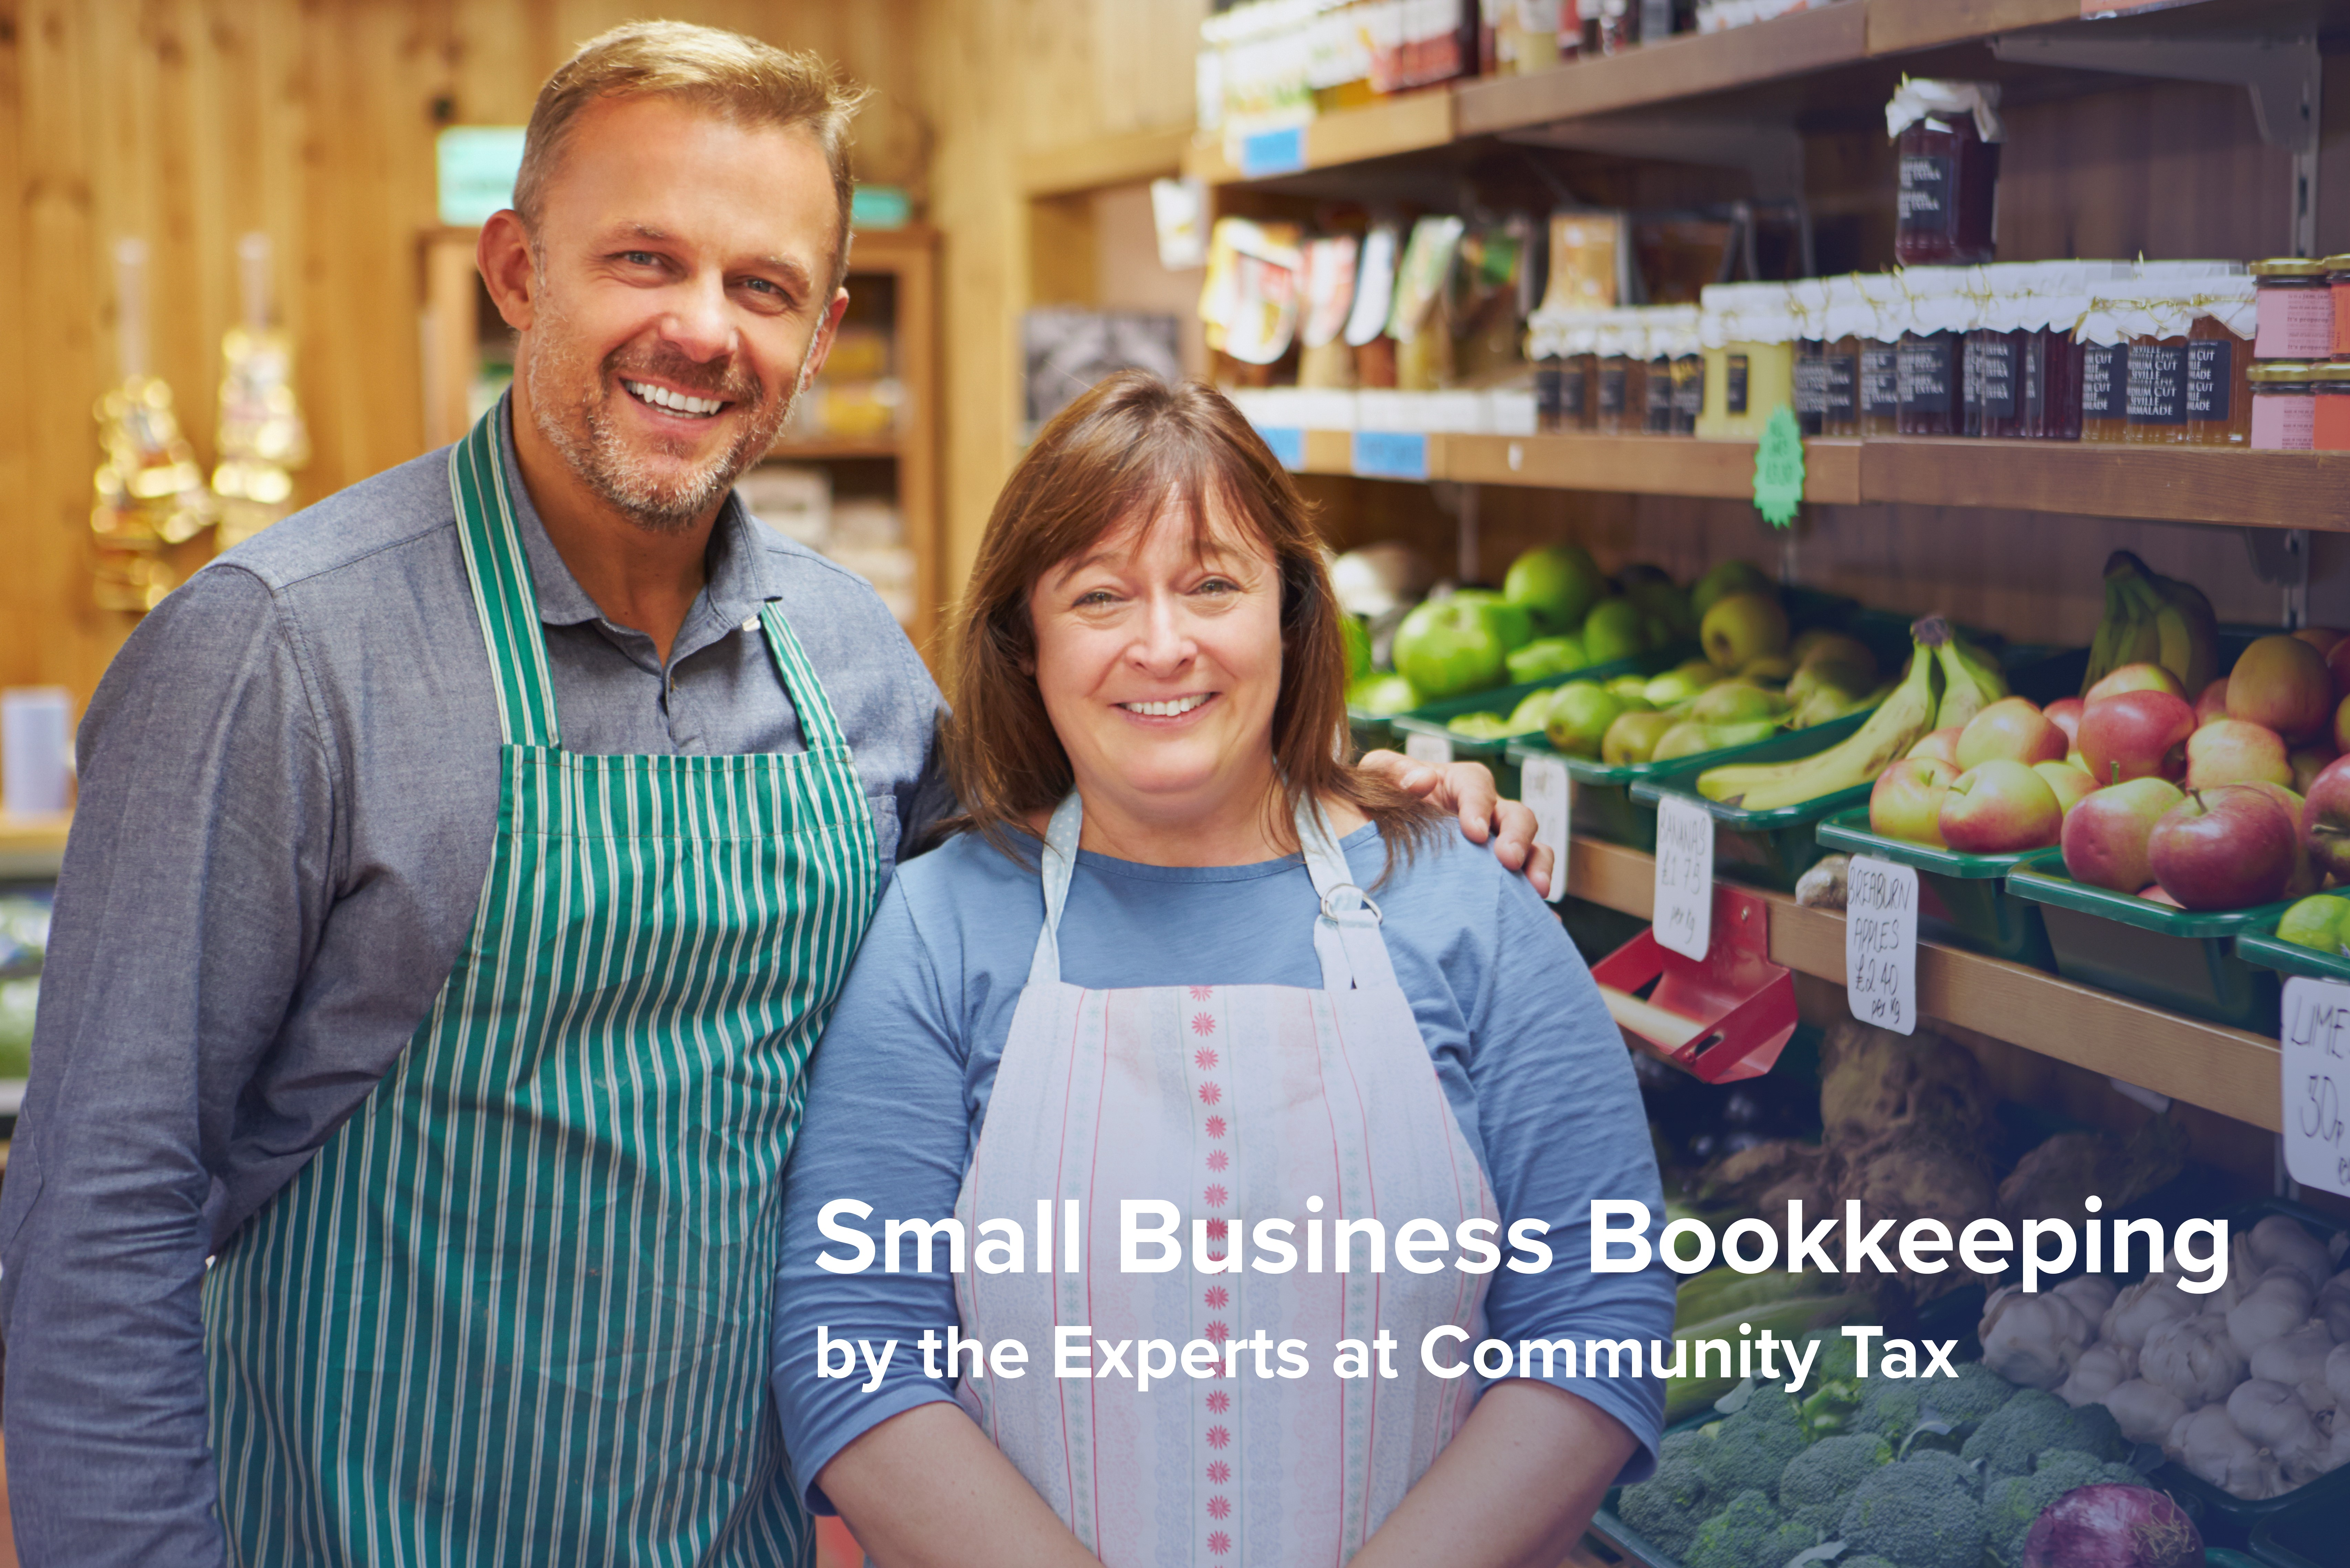 Small business bookkeeping accounting community tax if you want to take your small business from good to great consider hiring a bookkeeper from community tax getting your business off the ground is tough 1betcityfo Images